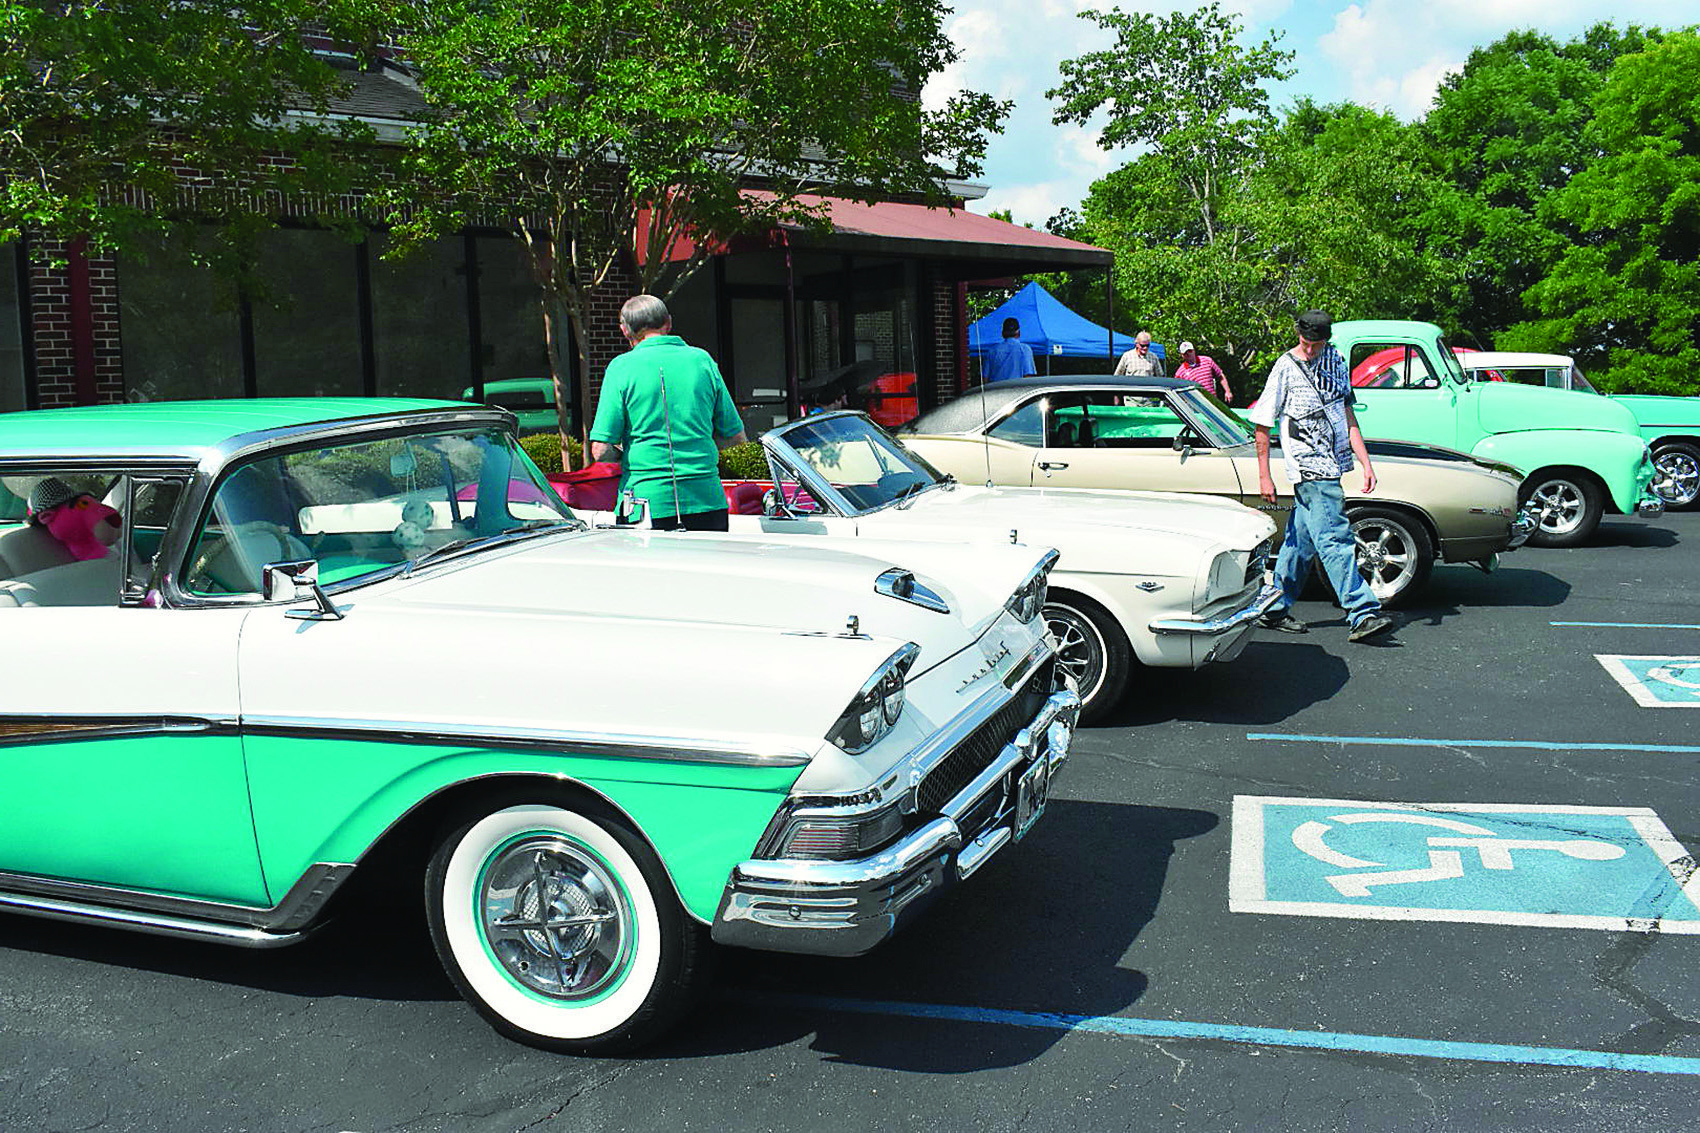 Jasper's First Baptist Church held its second annual community cruise-in and cookout at the church parking lot on Sunday, with cars, food and children inflatables.